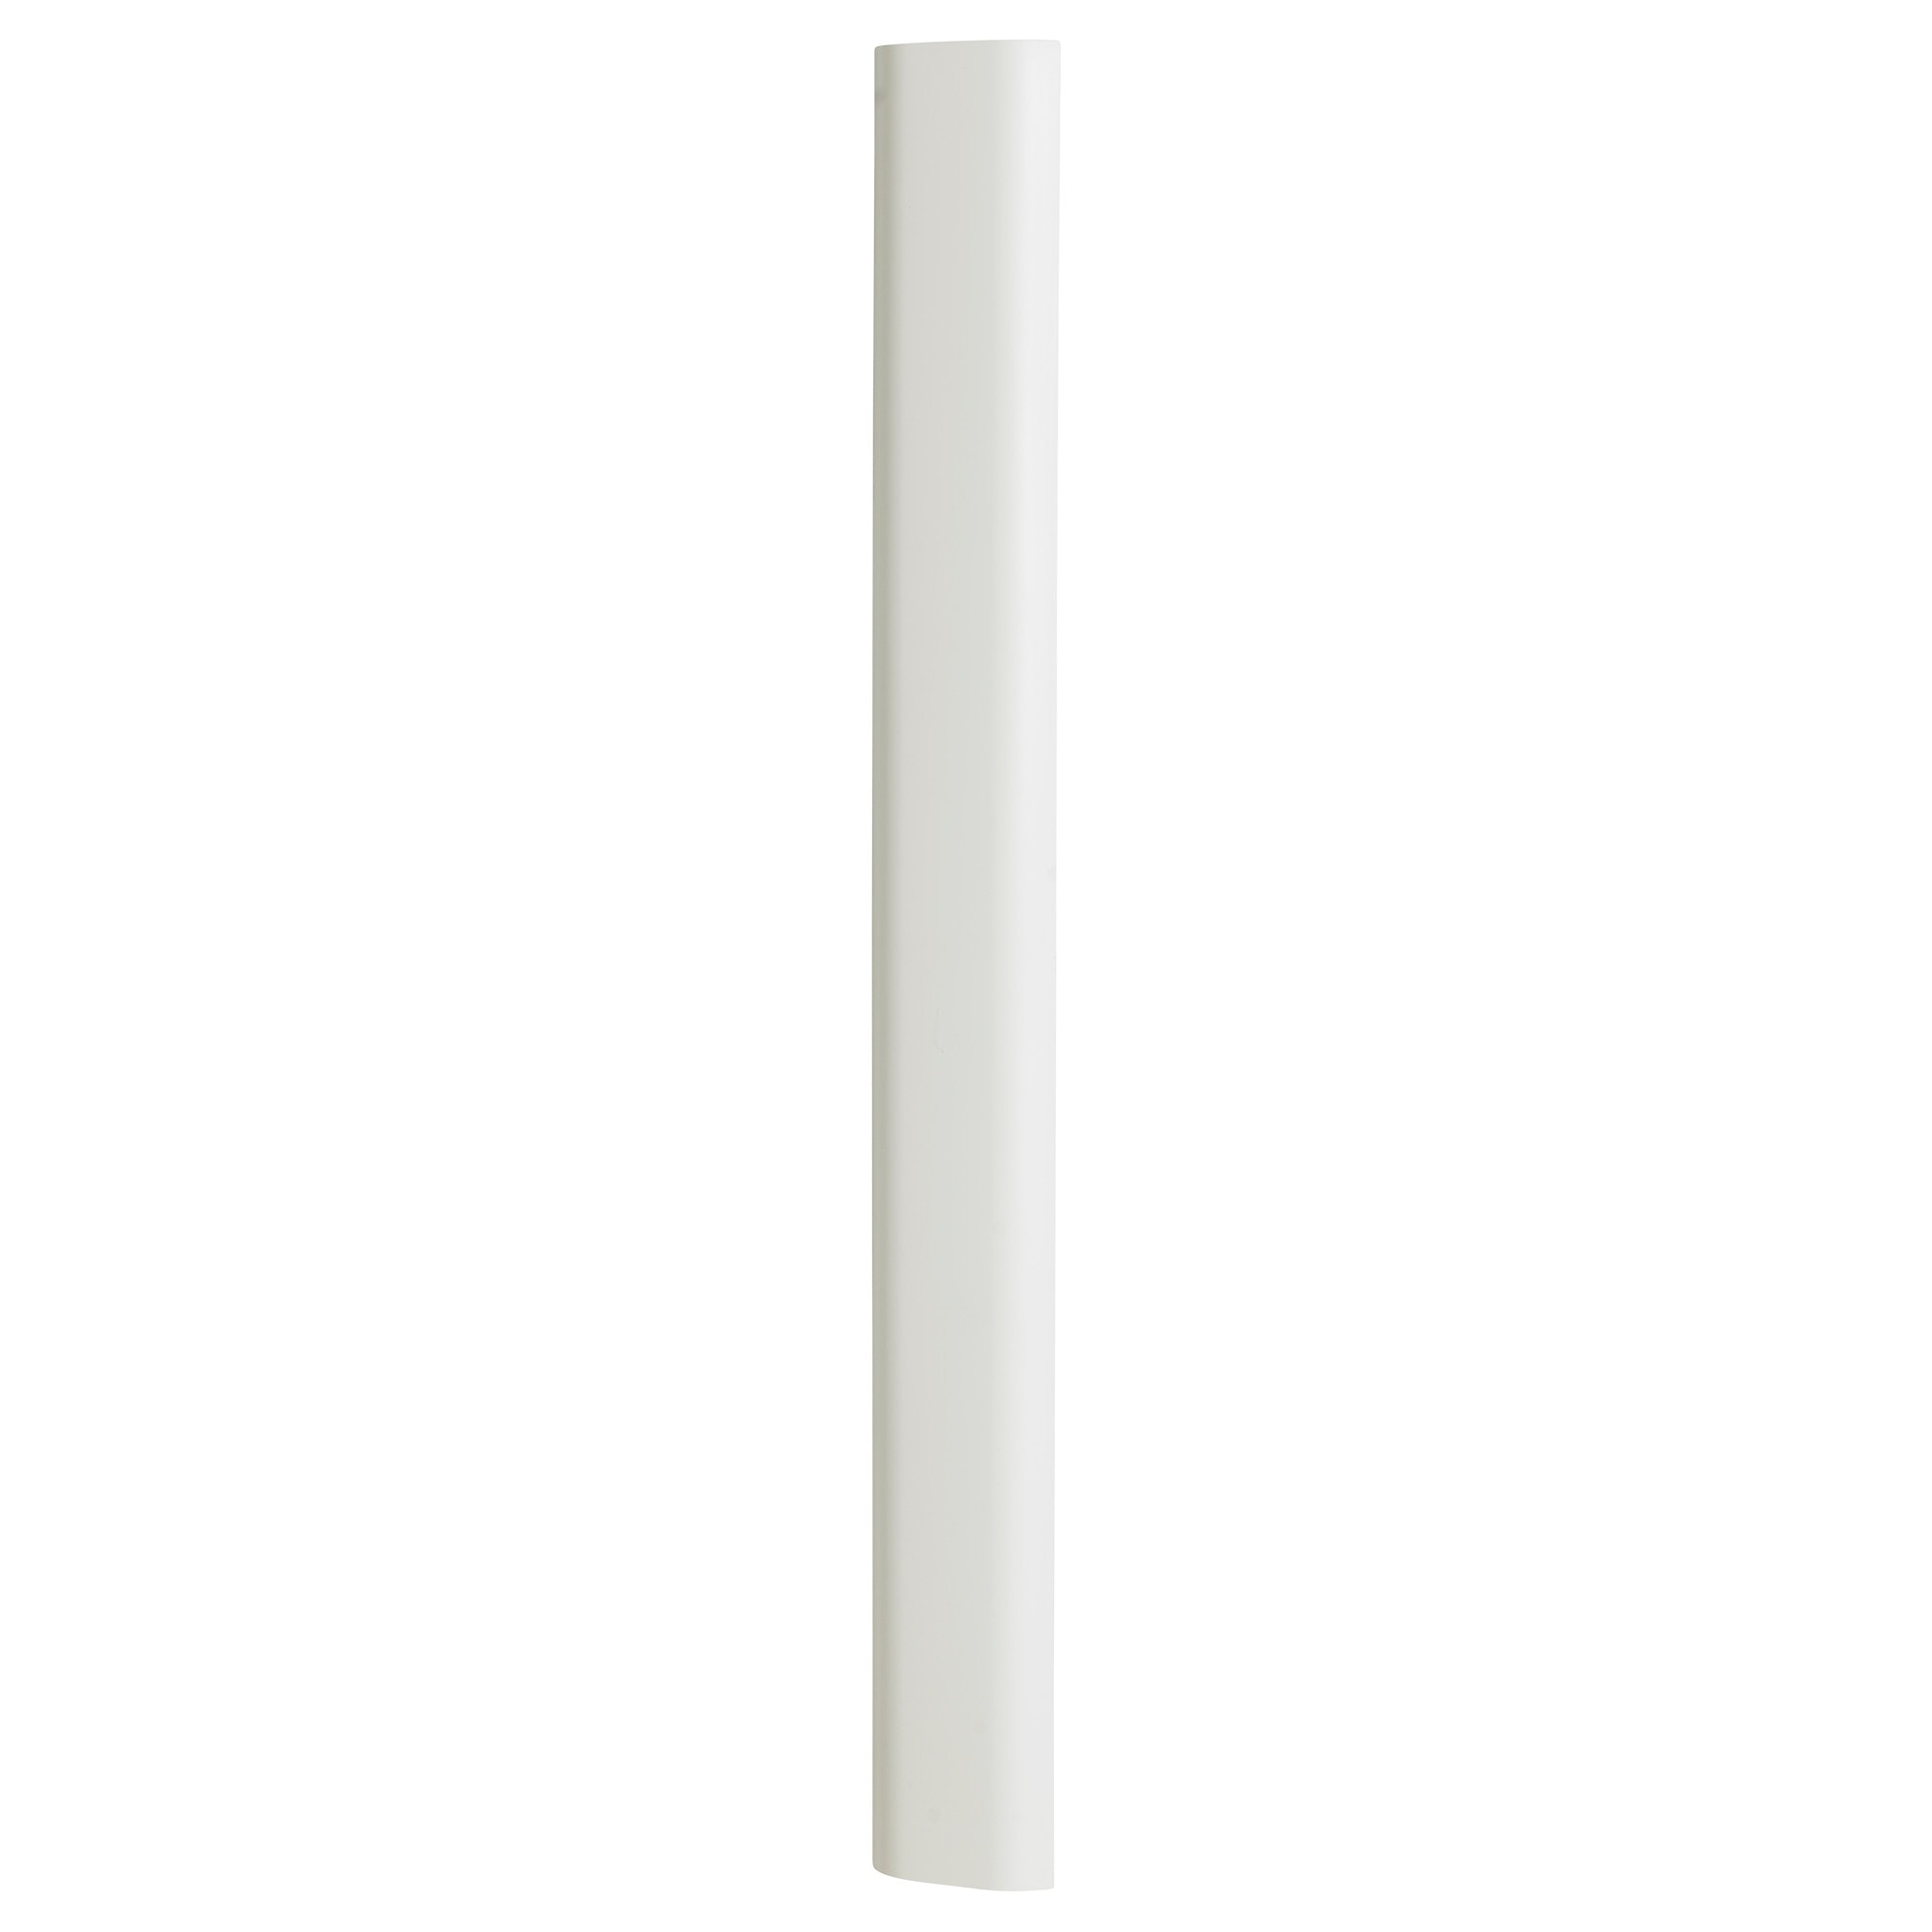 Uppleva Cord Cover Strip Ikea Surface Mounted Conduit For Wiring Home This Is